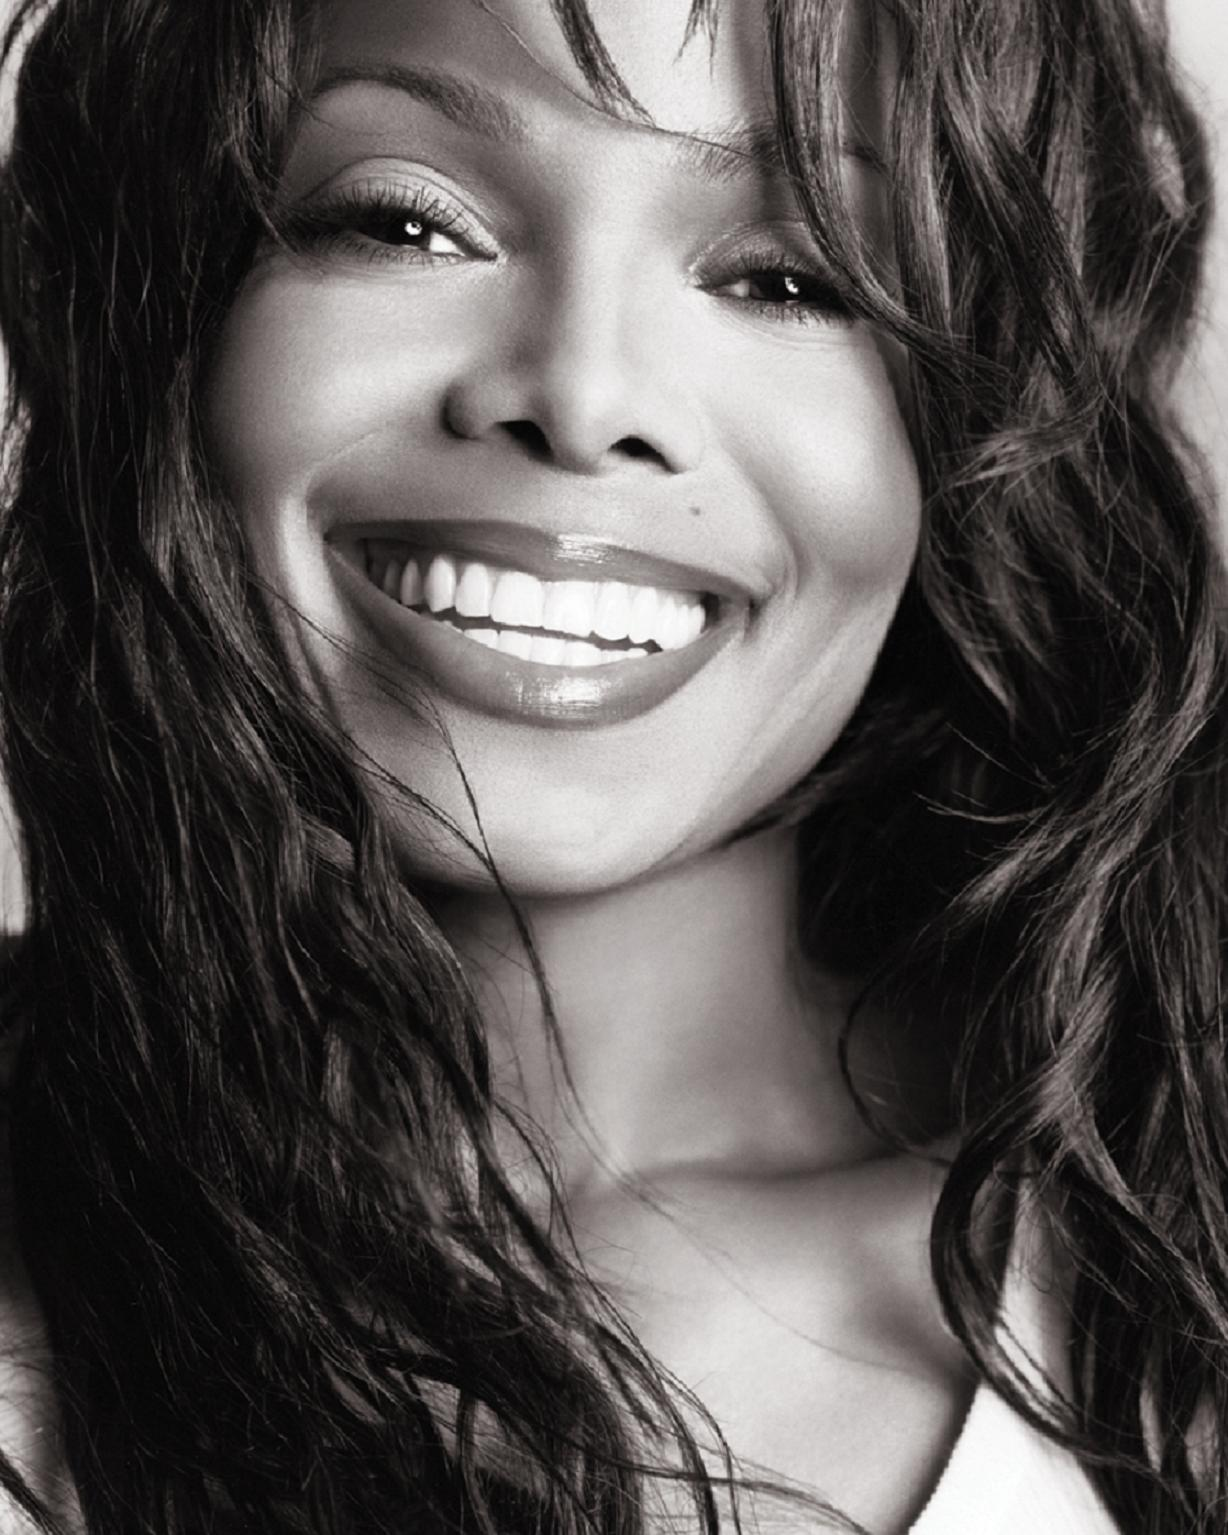 Author Photo (jpg): Janet Jackson - 8651_47208804_hr